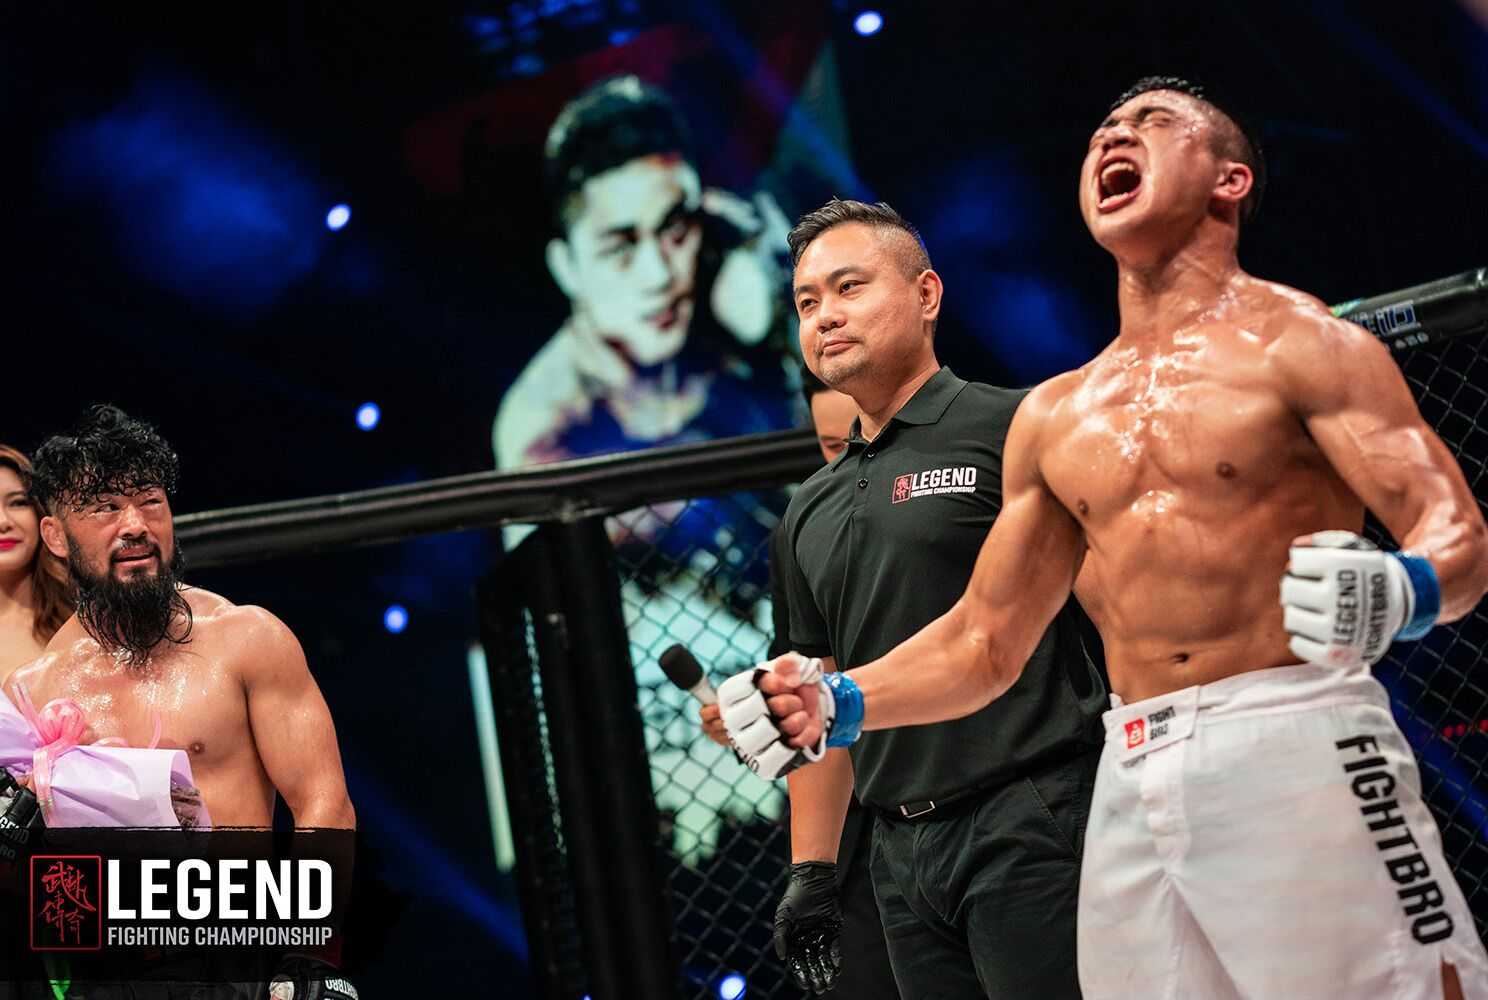 Legend Fighting Championship returns to Macau for several events